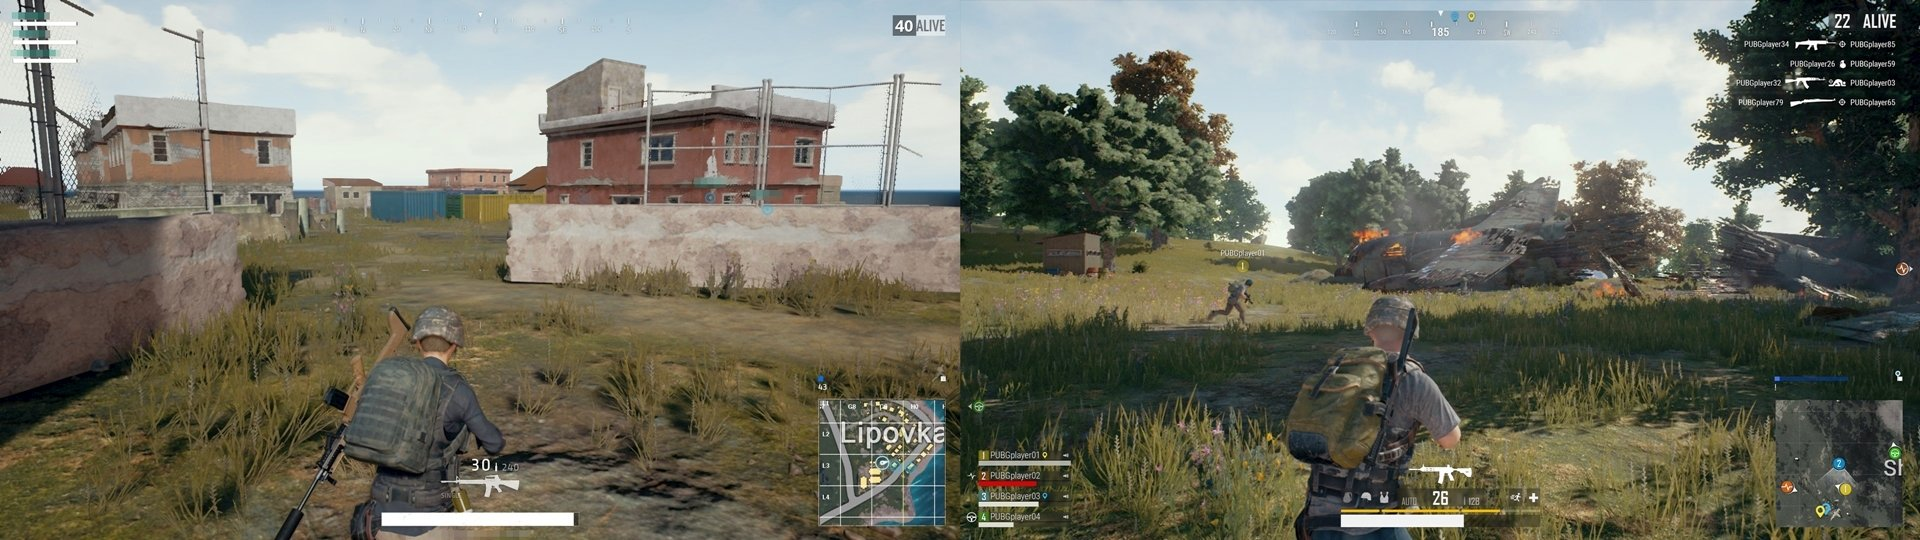 PlayerUnknown's Battlegrounds 1.0 Update #3 Patch Notes